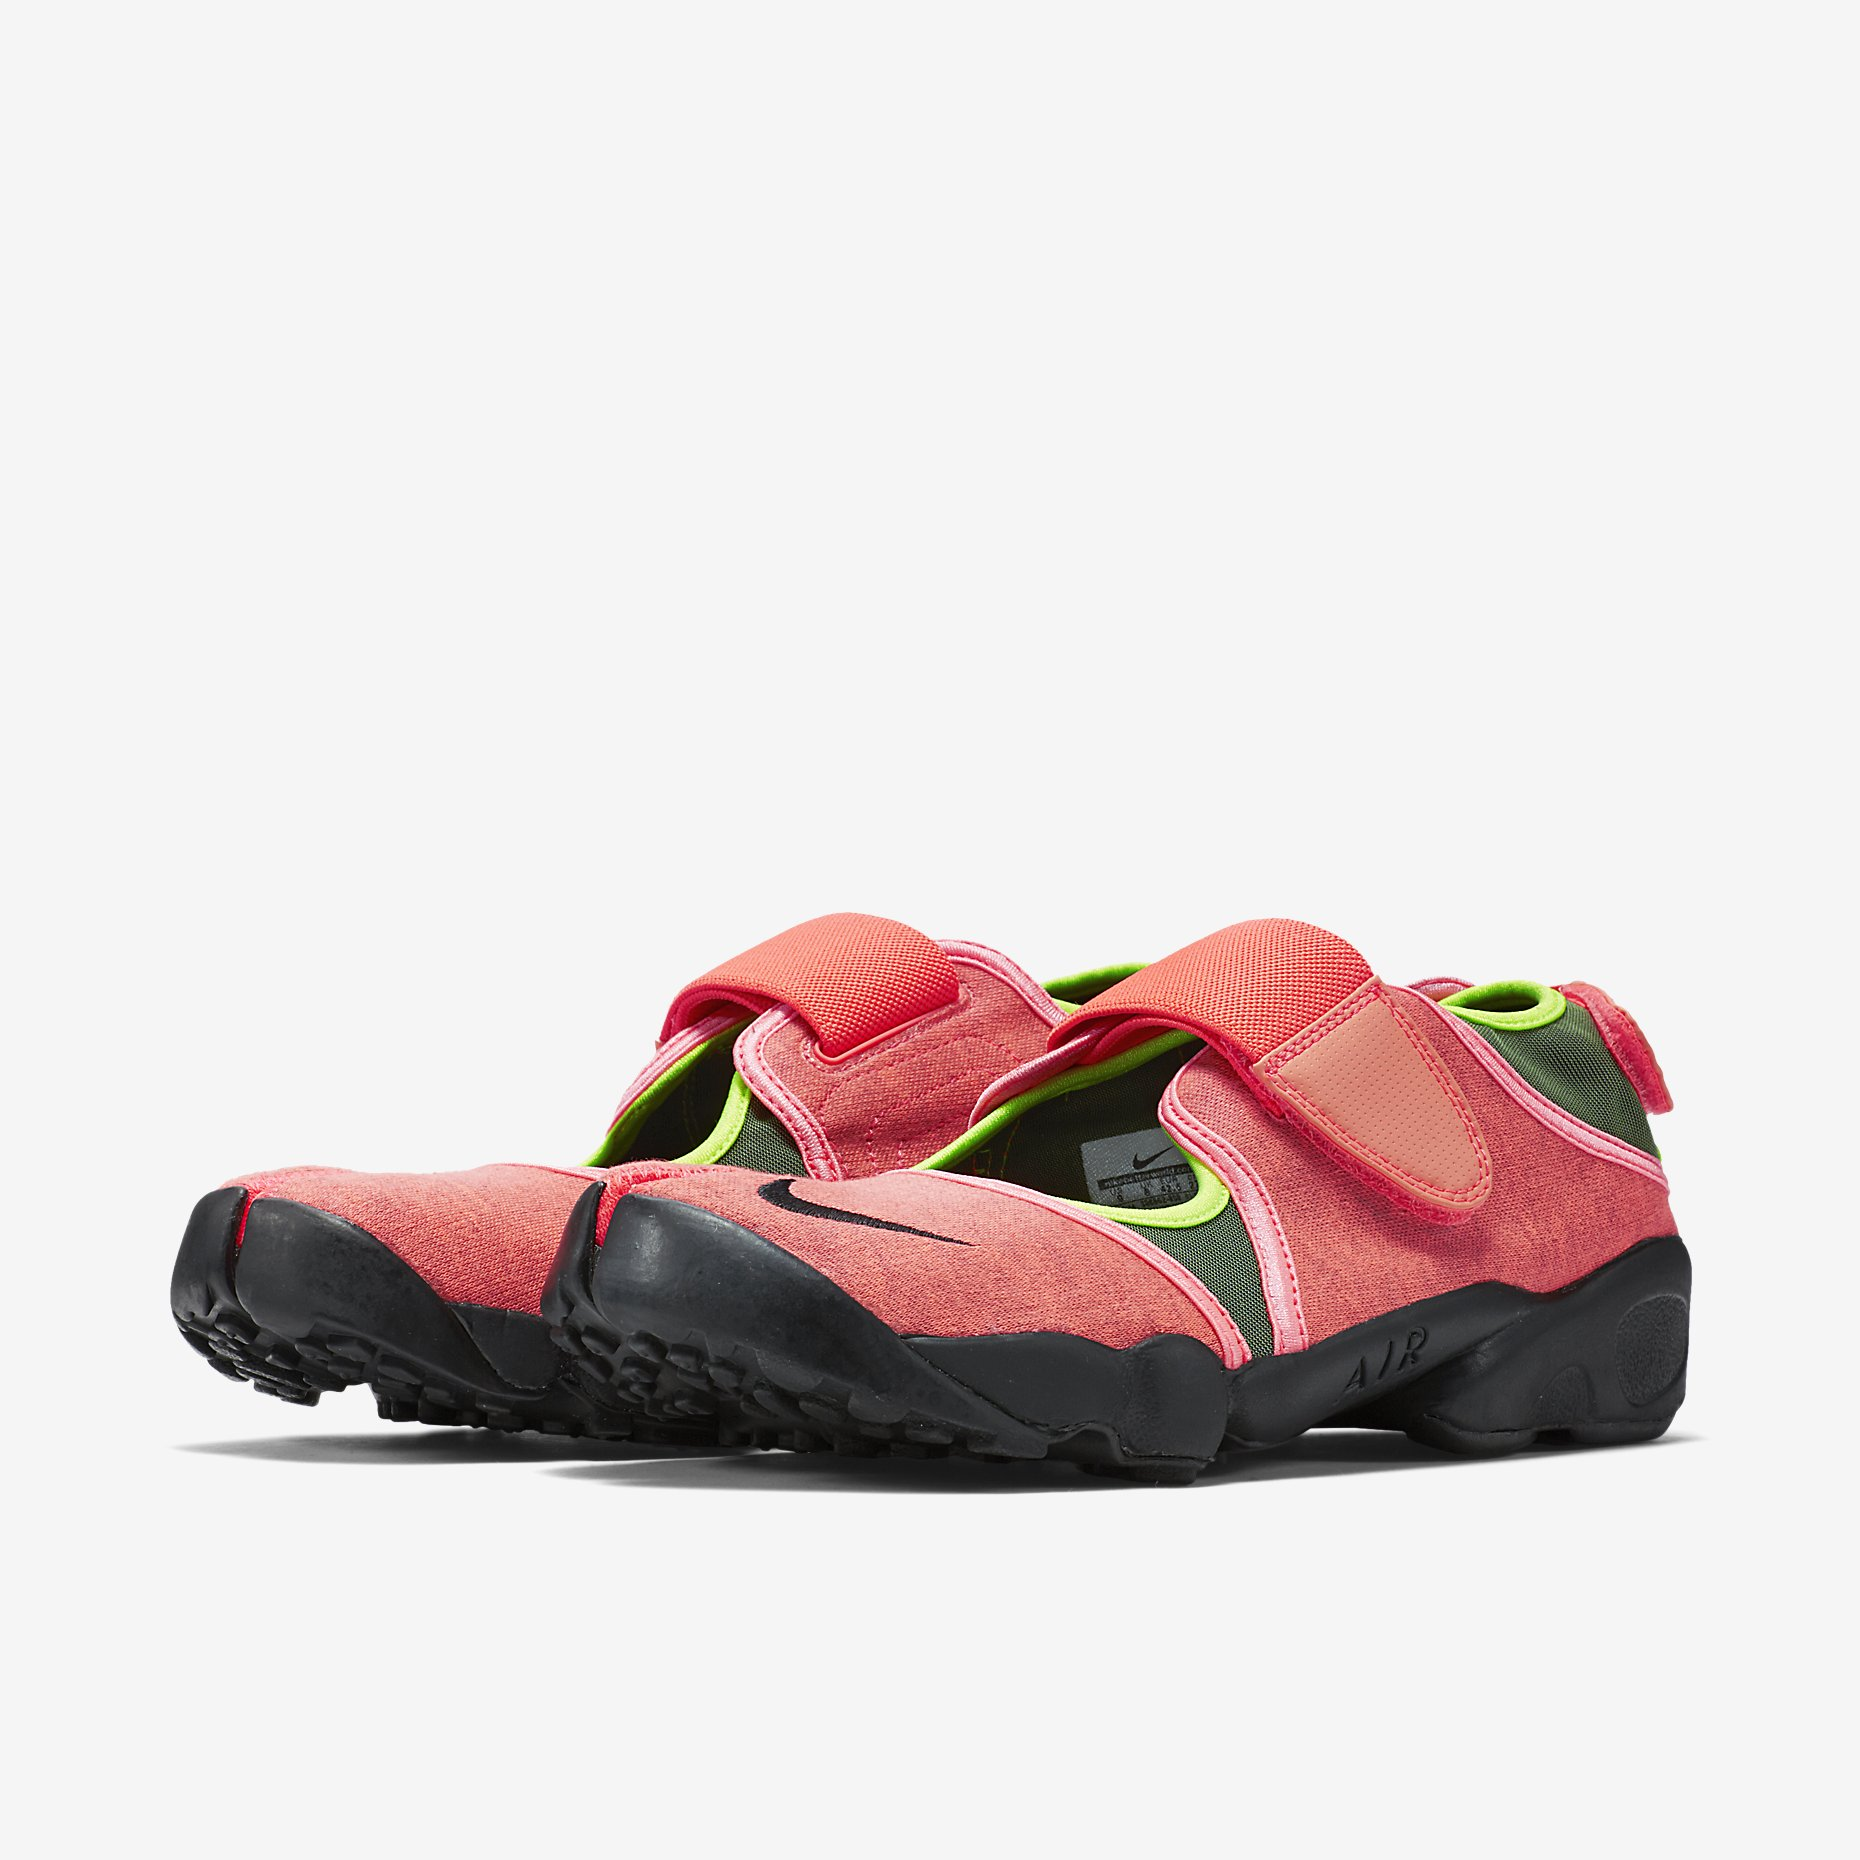 nike air rift 308662 800 sneakers addict. Black Bedroom Furniture Sets. Home Design Ideas